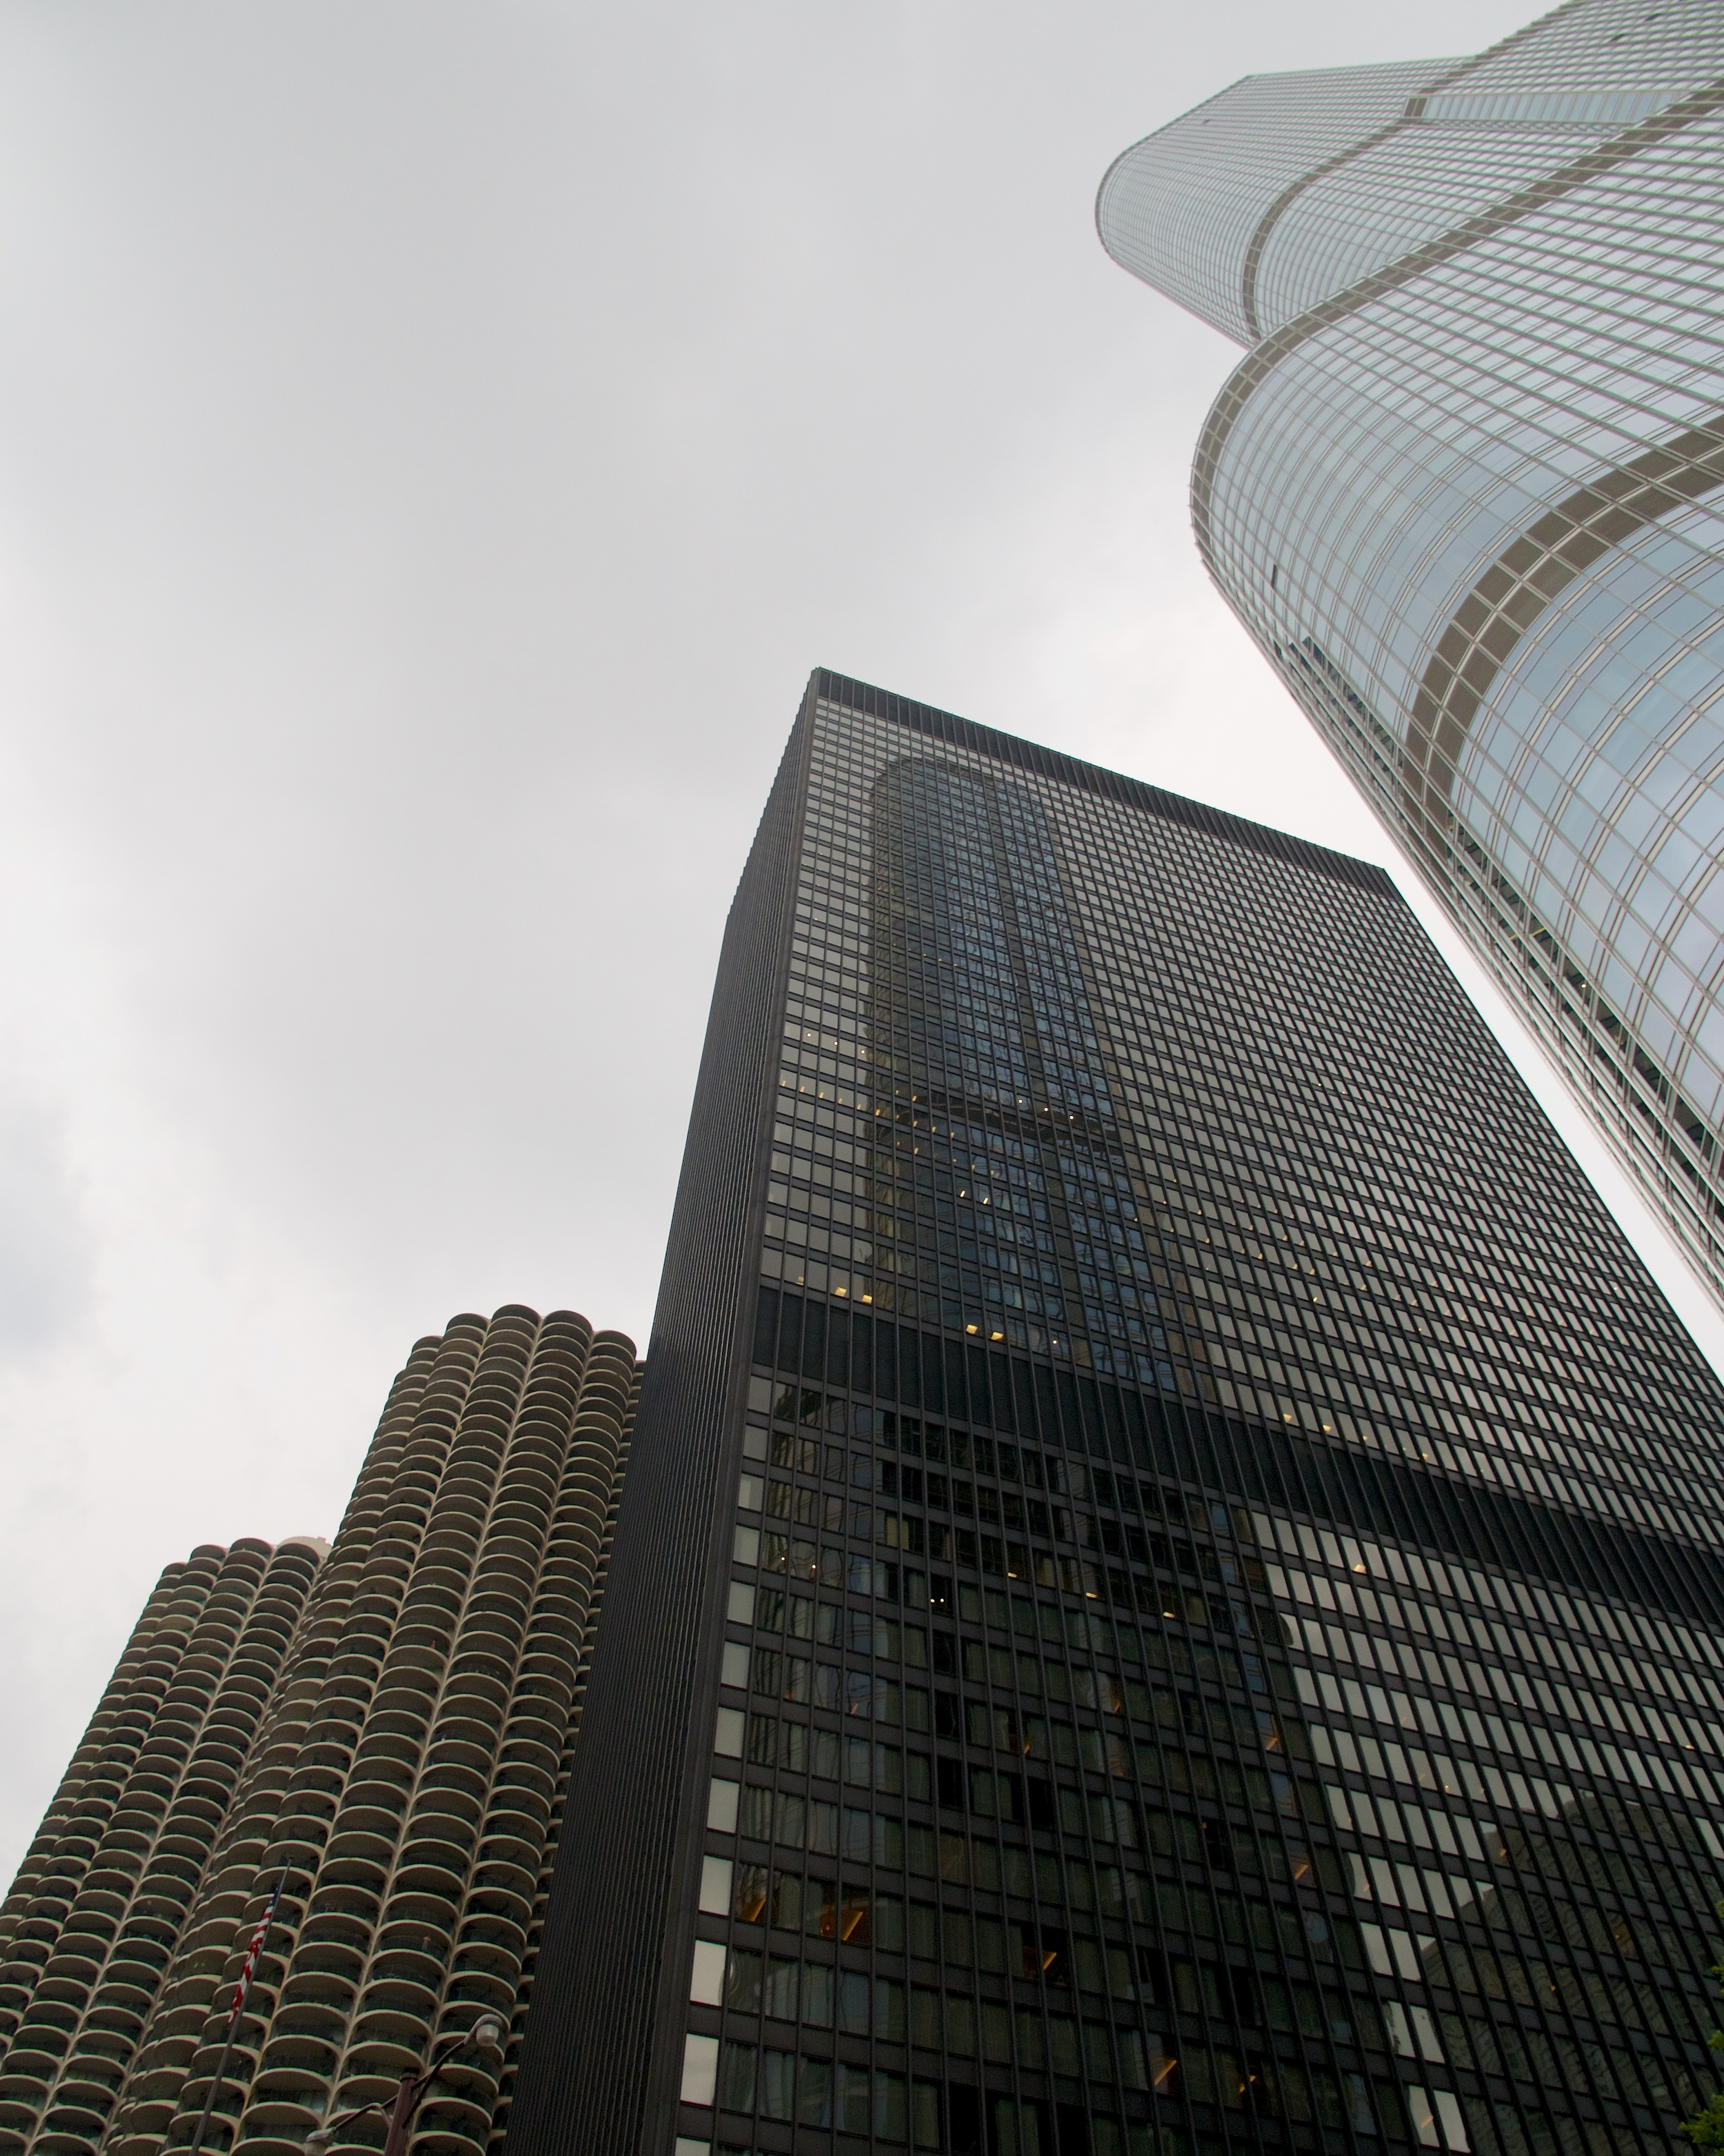 Marina City, AMA Plaza, Trump Tower